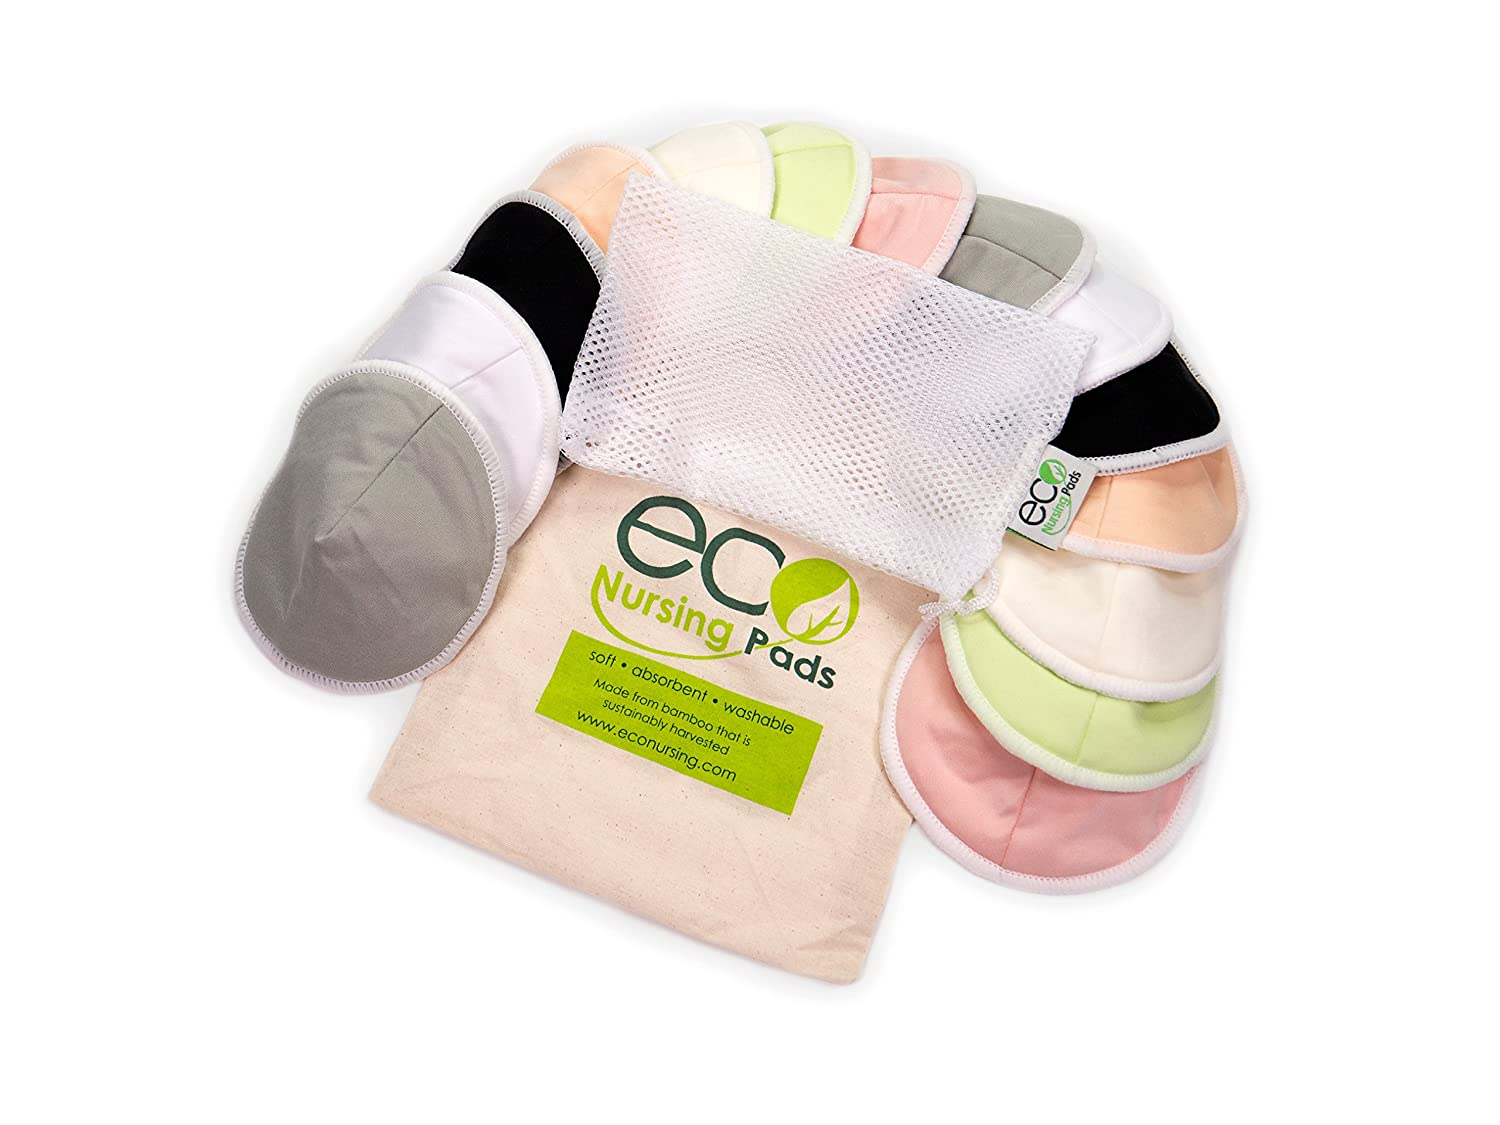 Washable Reusable Bamboo Nursing Pads Perfect Baby Shower Gift Medium 10cm | 14 Pack with 2 Bonus Pouches /& Free E-Book by EcoNursingPads Organic Bamboo Round Breastfeeding Pads